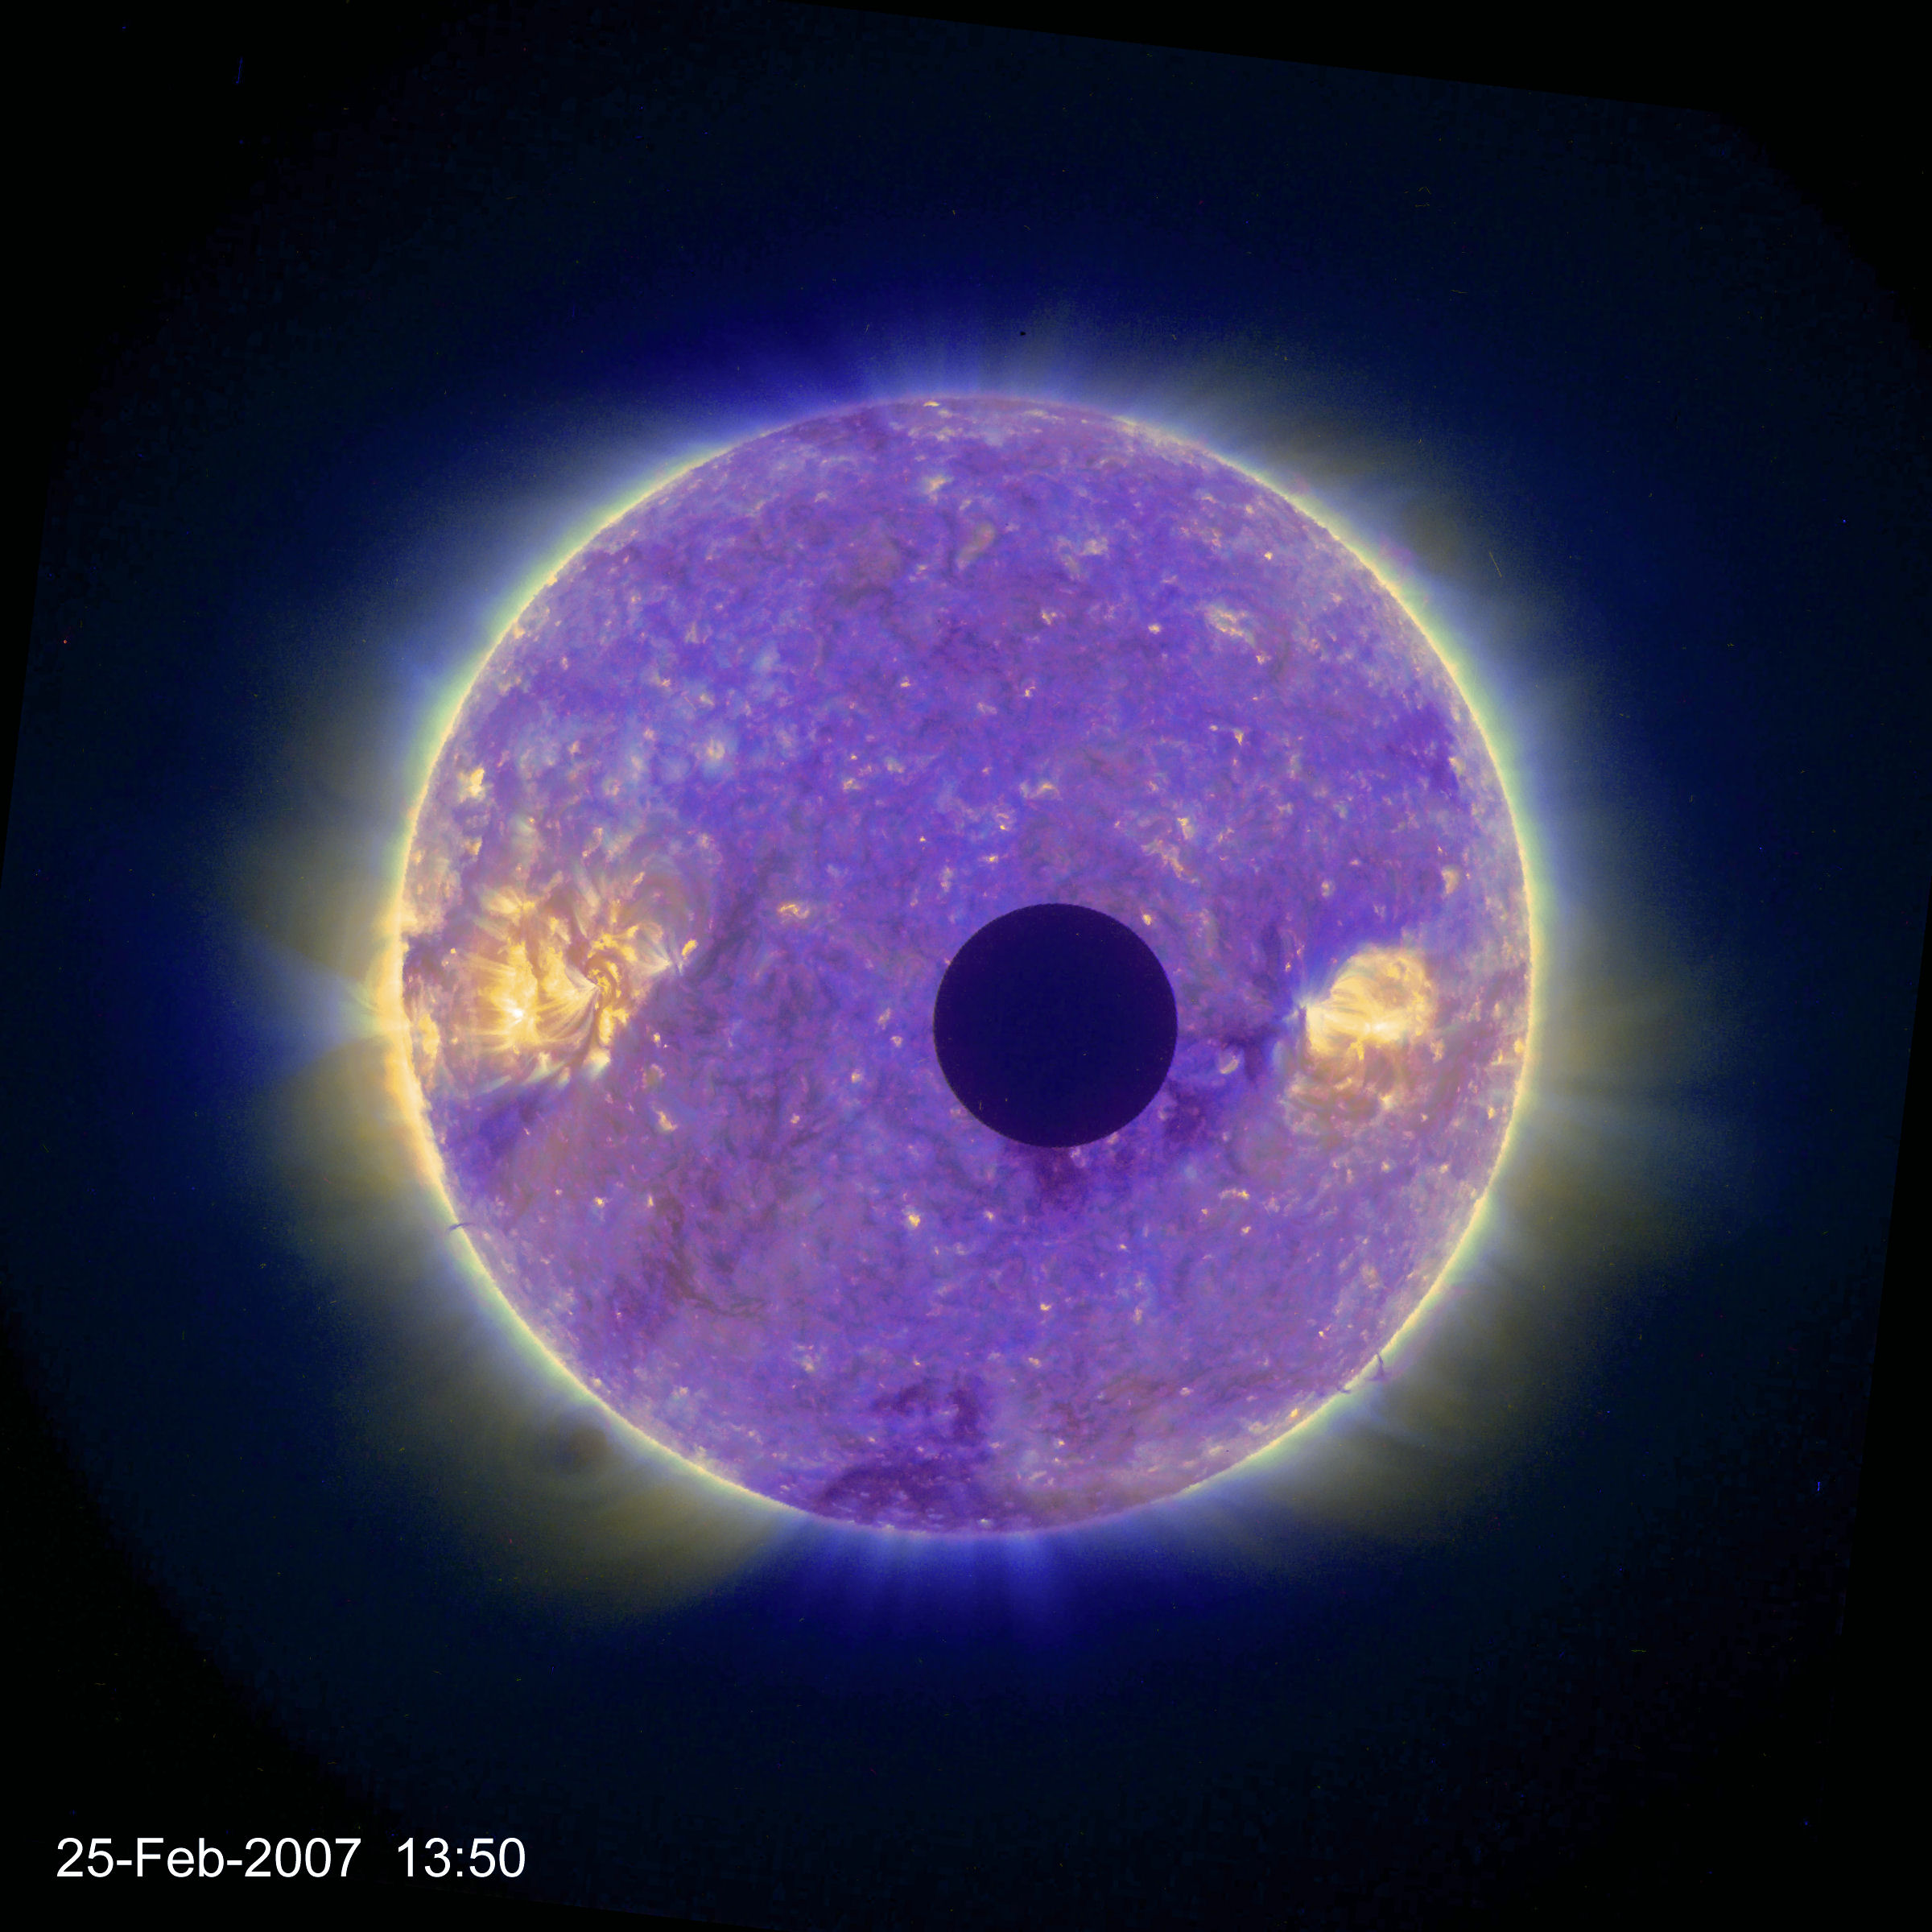 The bright disk of the Sun, showing many coronal filaments, flares and grainy patches in the wavelength of this image, is partly obscured by a small dark disk: here, the Moon covers less than a fifteenth of the Sun.